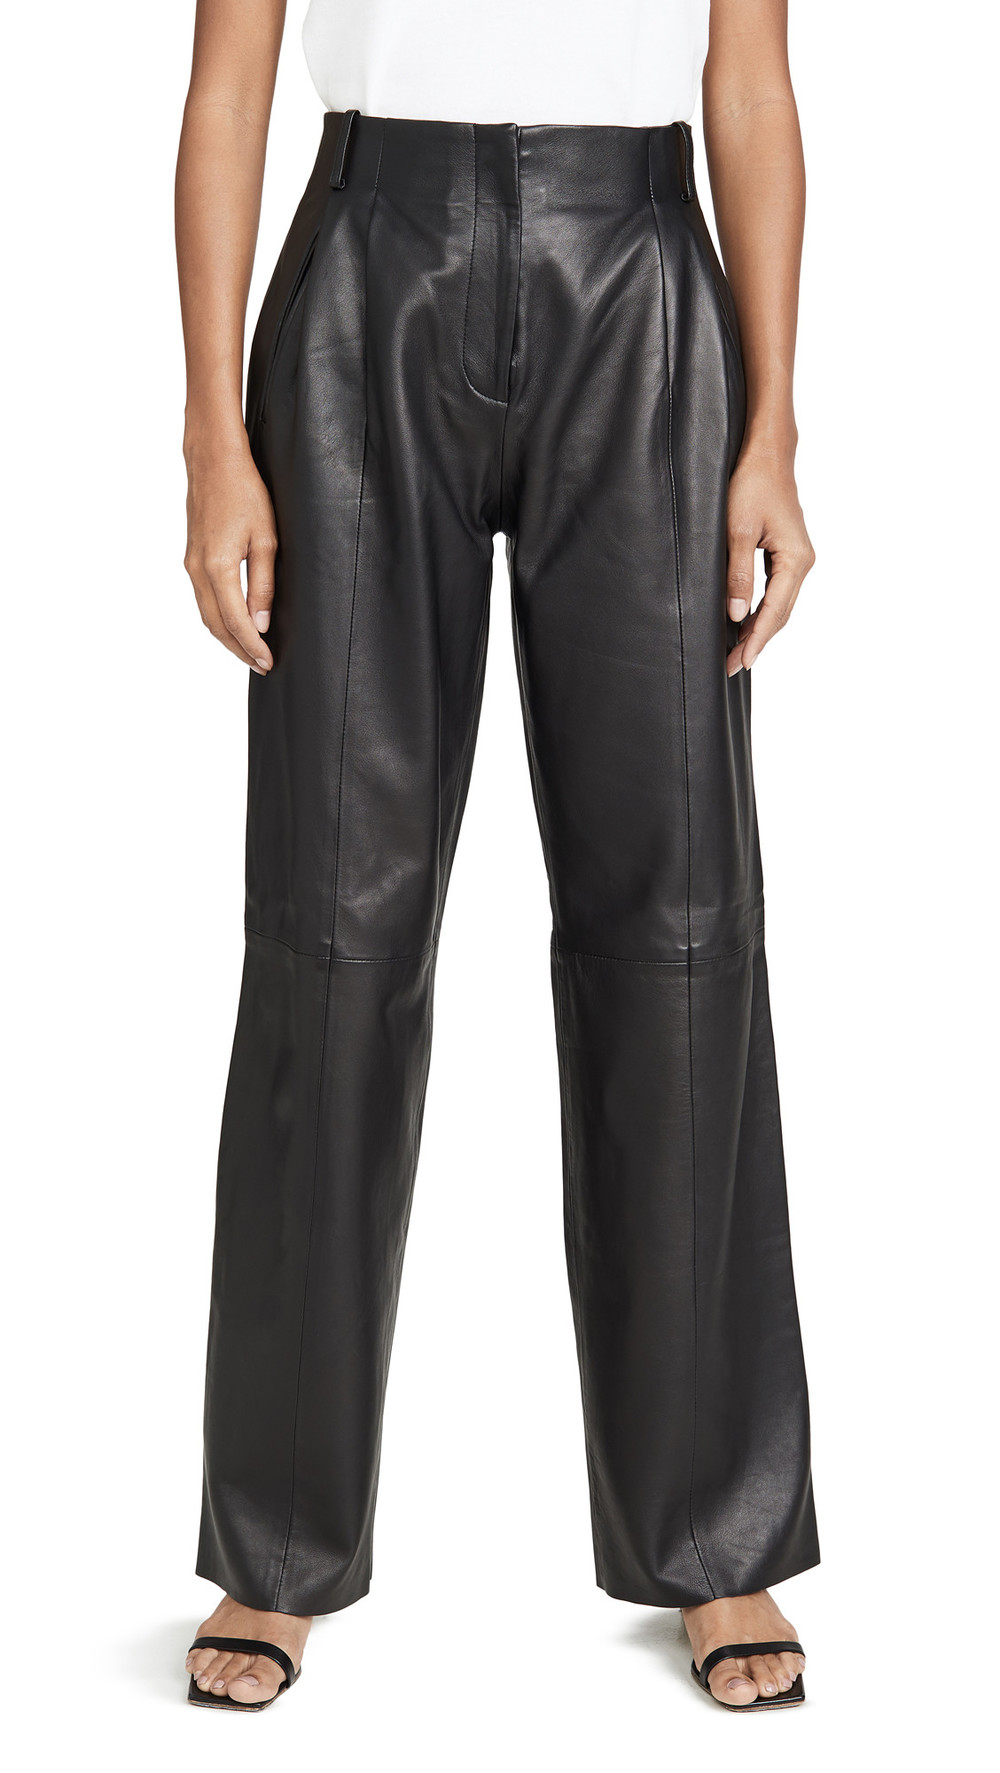 VEDA Bess Leather Trousers in black